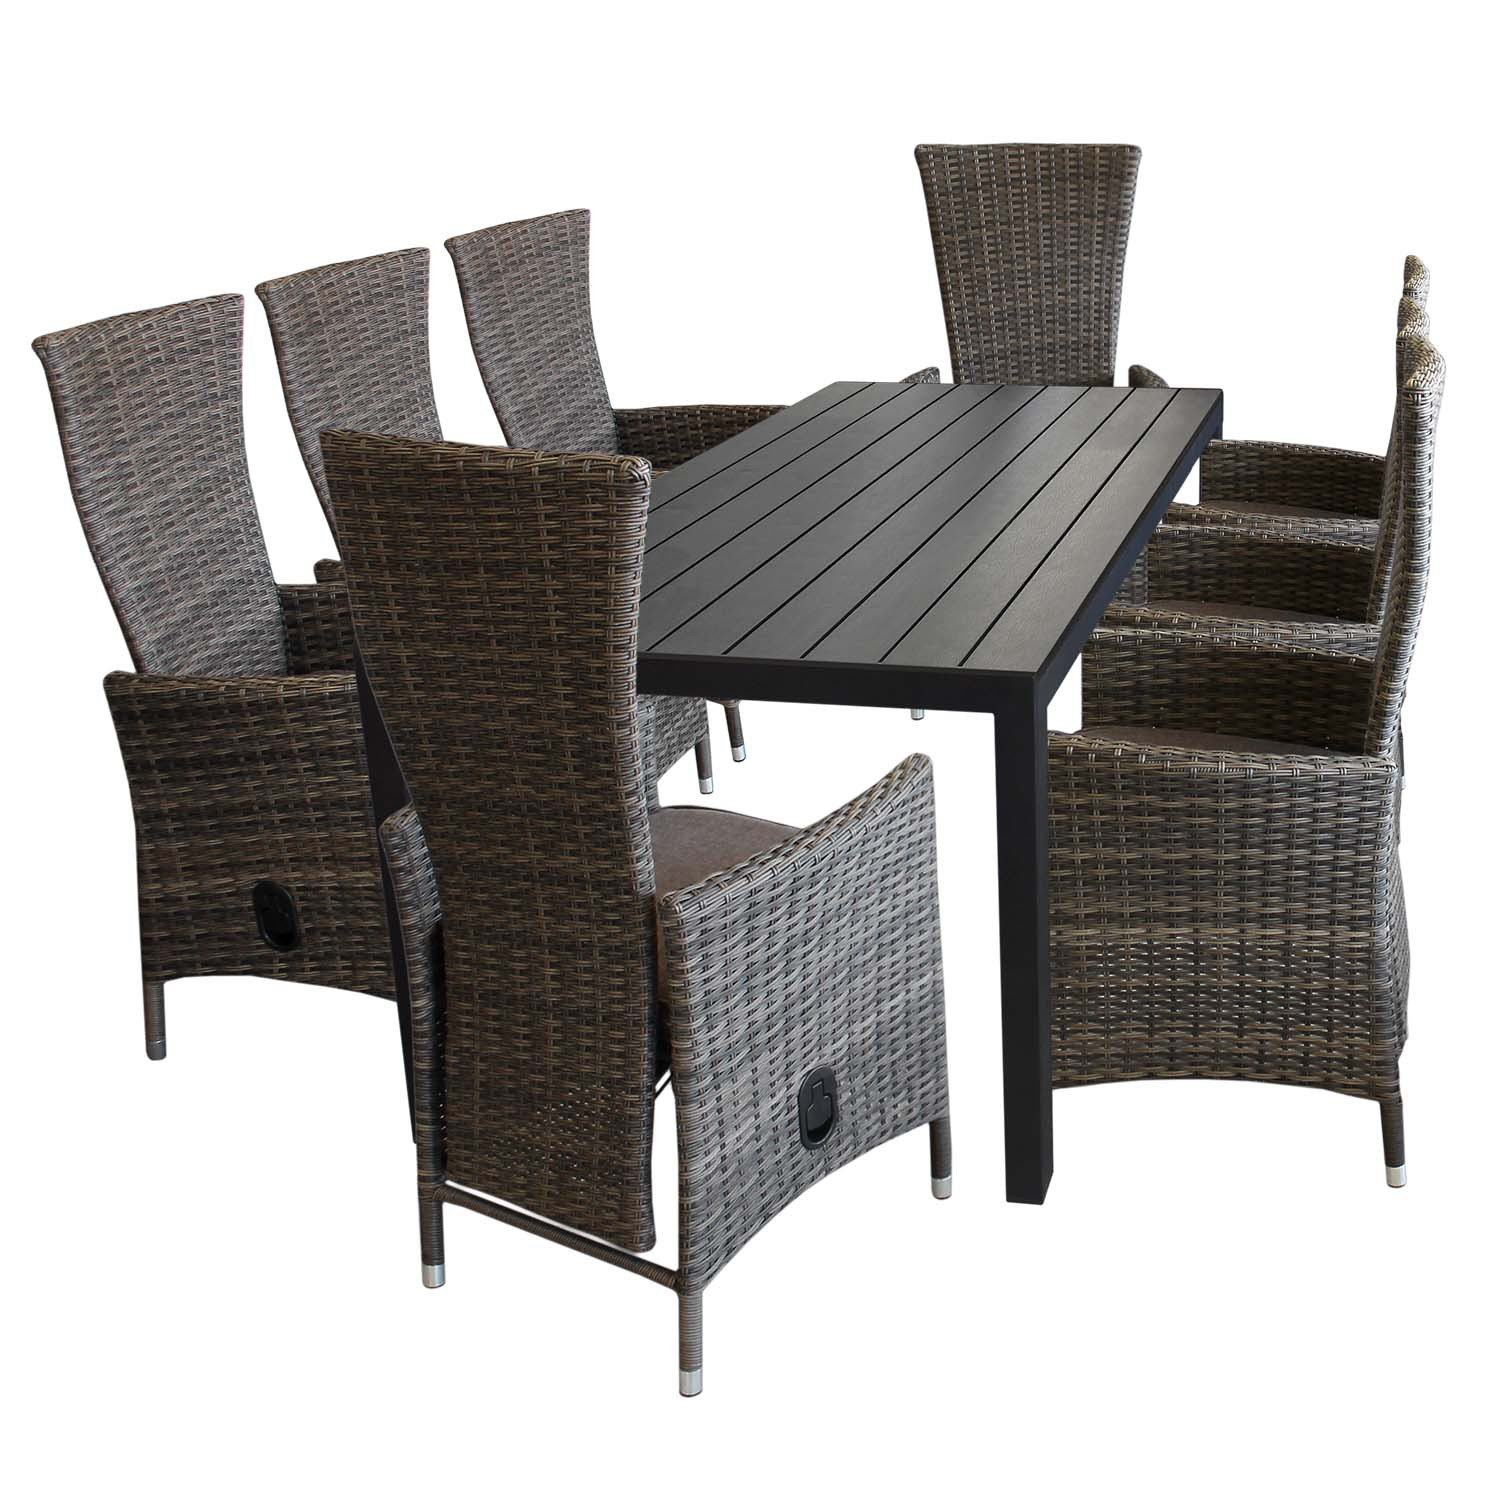 9tlg gartenm bel set aluminium polywood gartentisch 205x90cm 8x gartensessel polyrattan braun. Black Bedroom Furniture Sets. Home Design Ideas